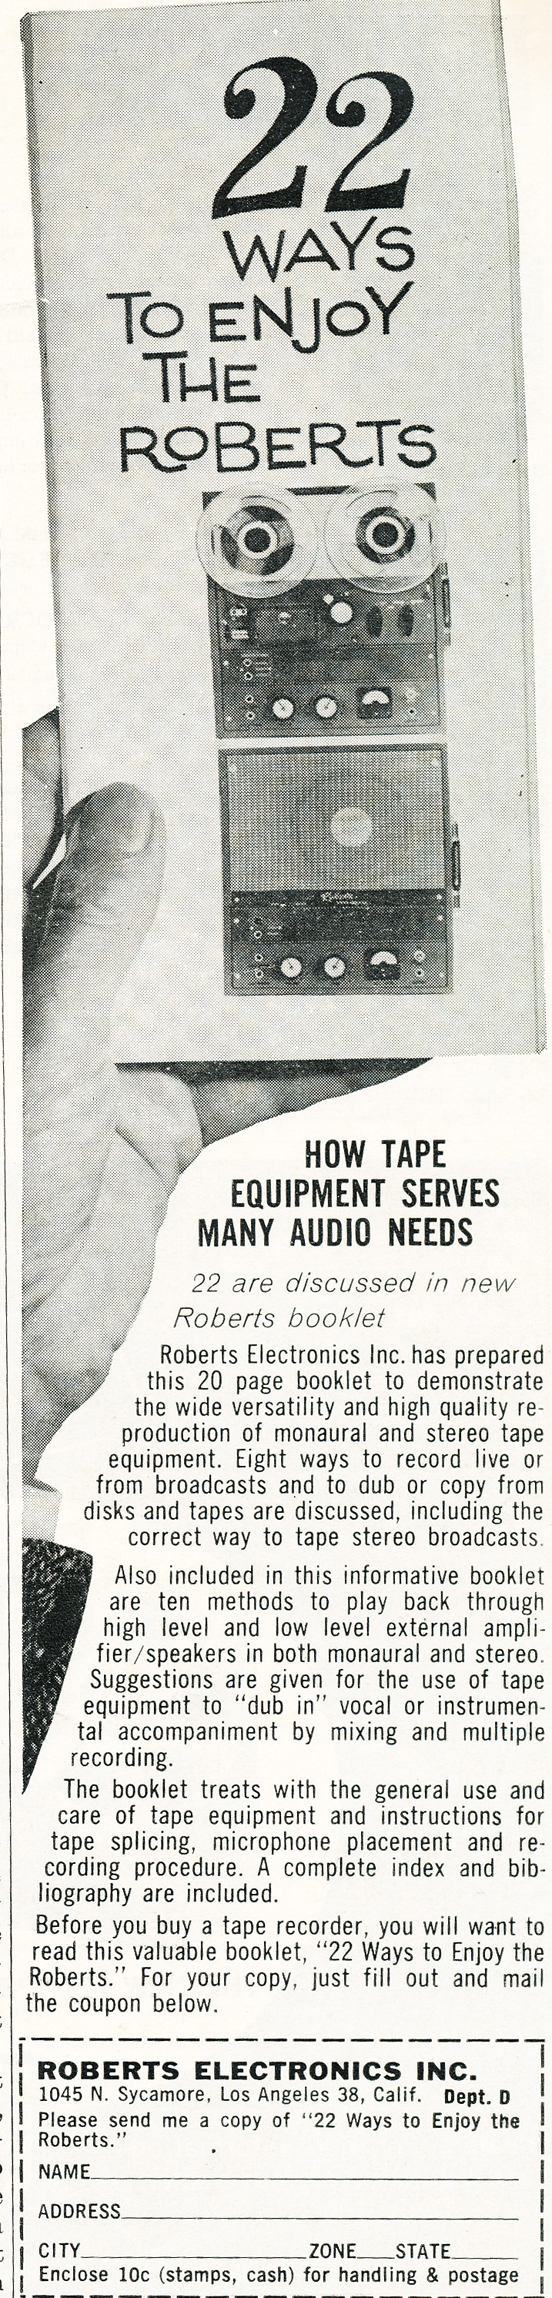 1959 Roberts reel tape recorder ad in Reel2ReelTexas.com's vintage recording collection